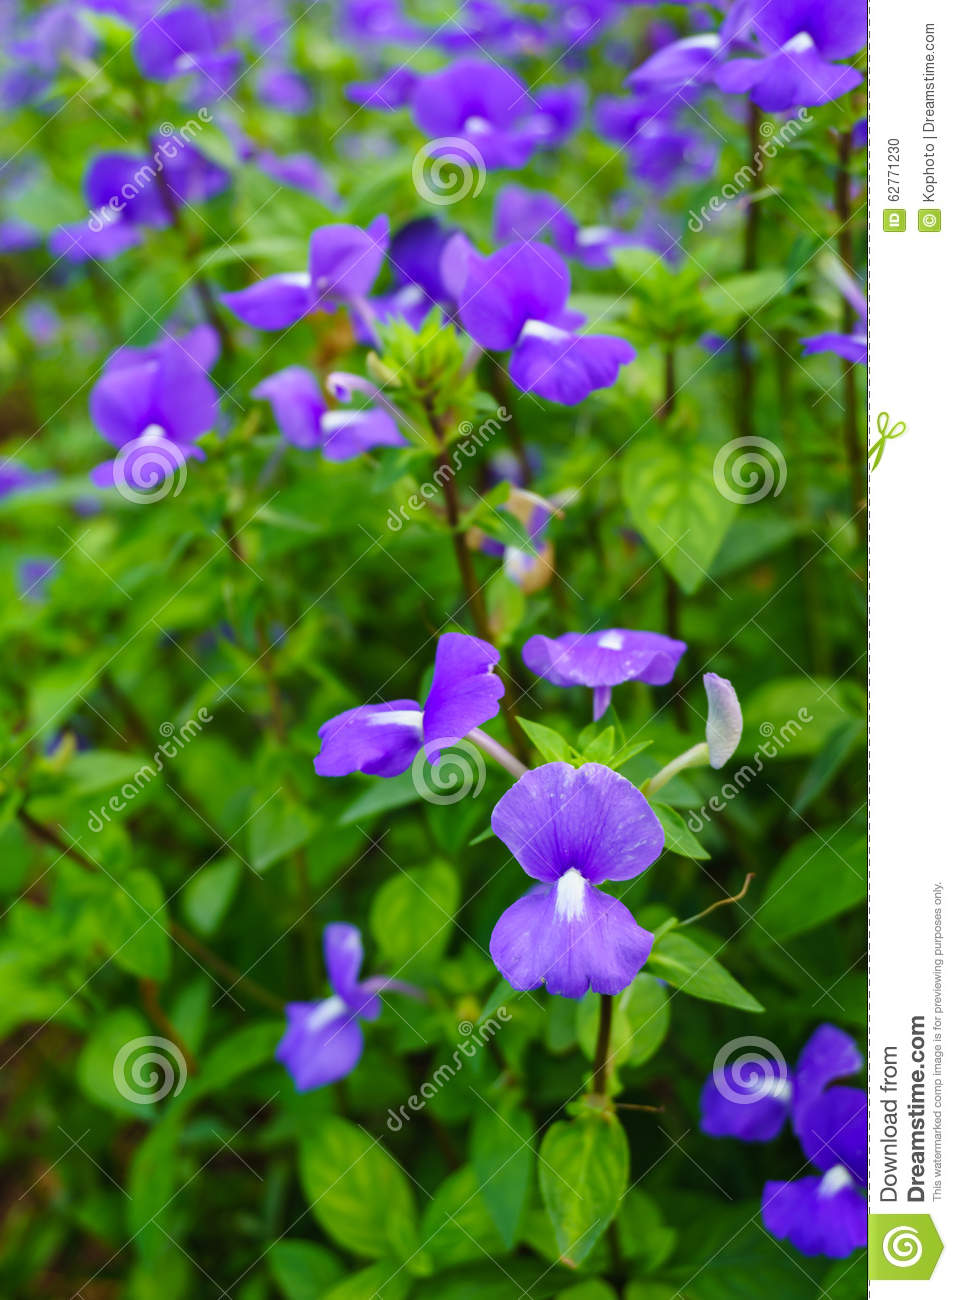 Brazilina Snapdragon Blue Hawaii Flower Stock Photo Image Of